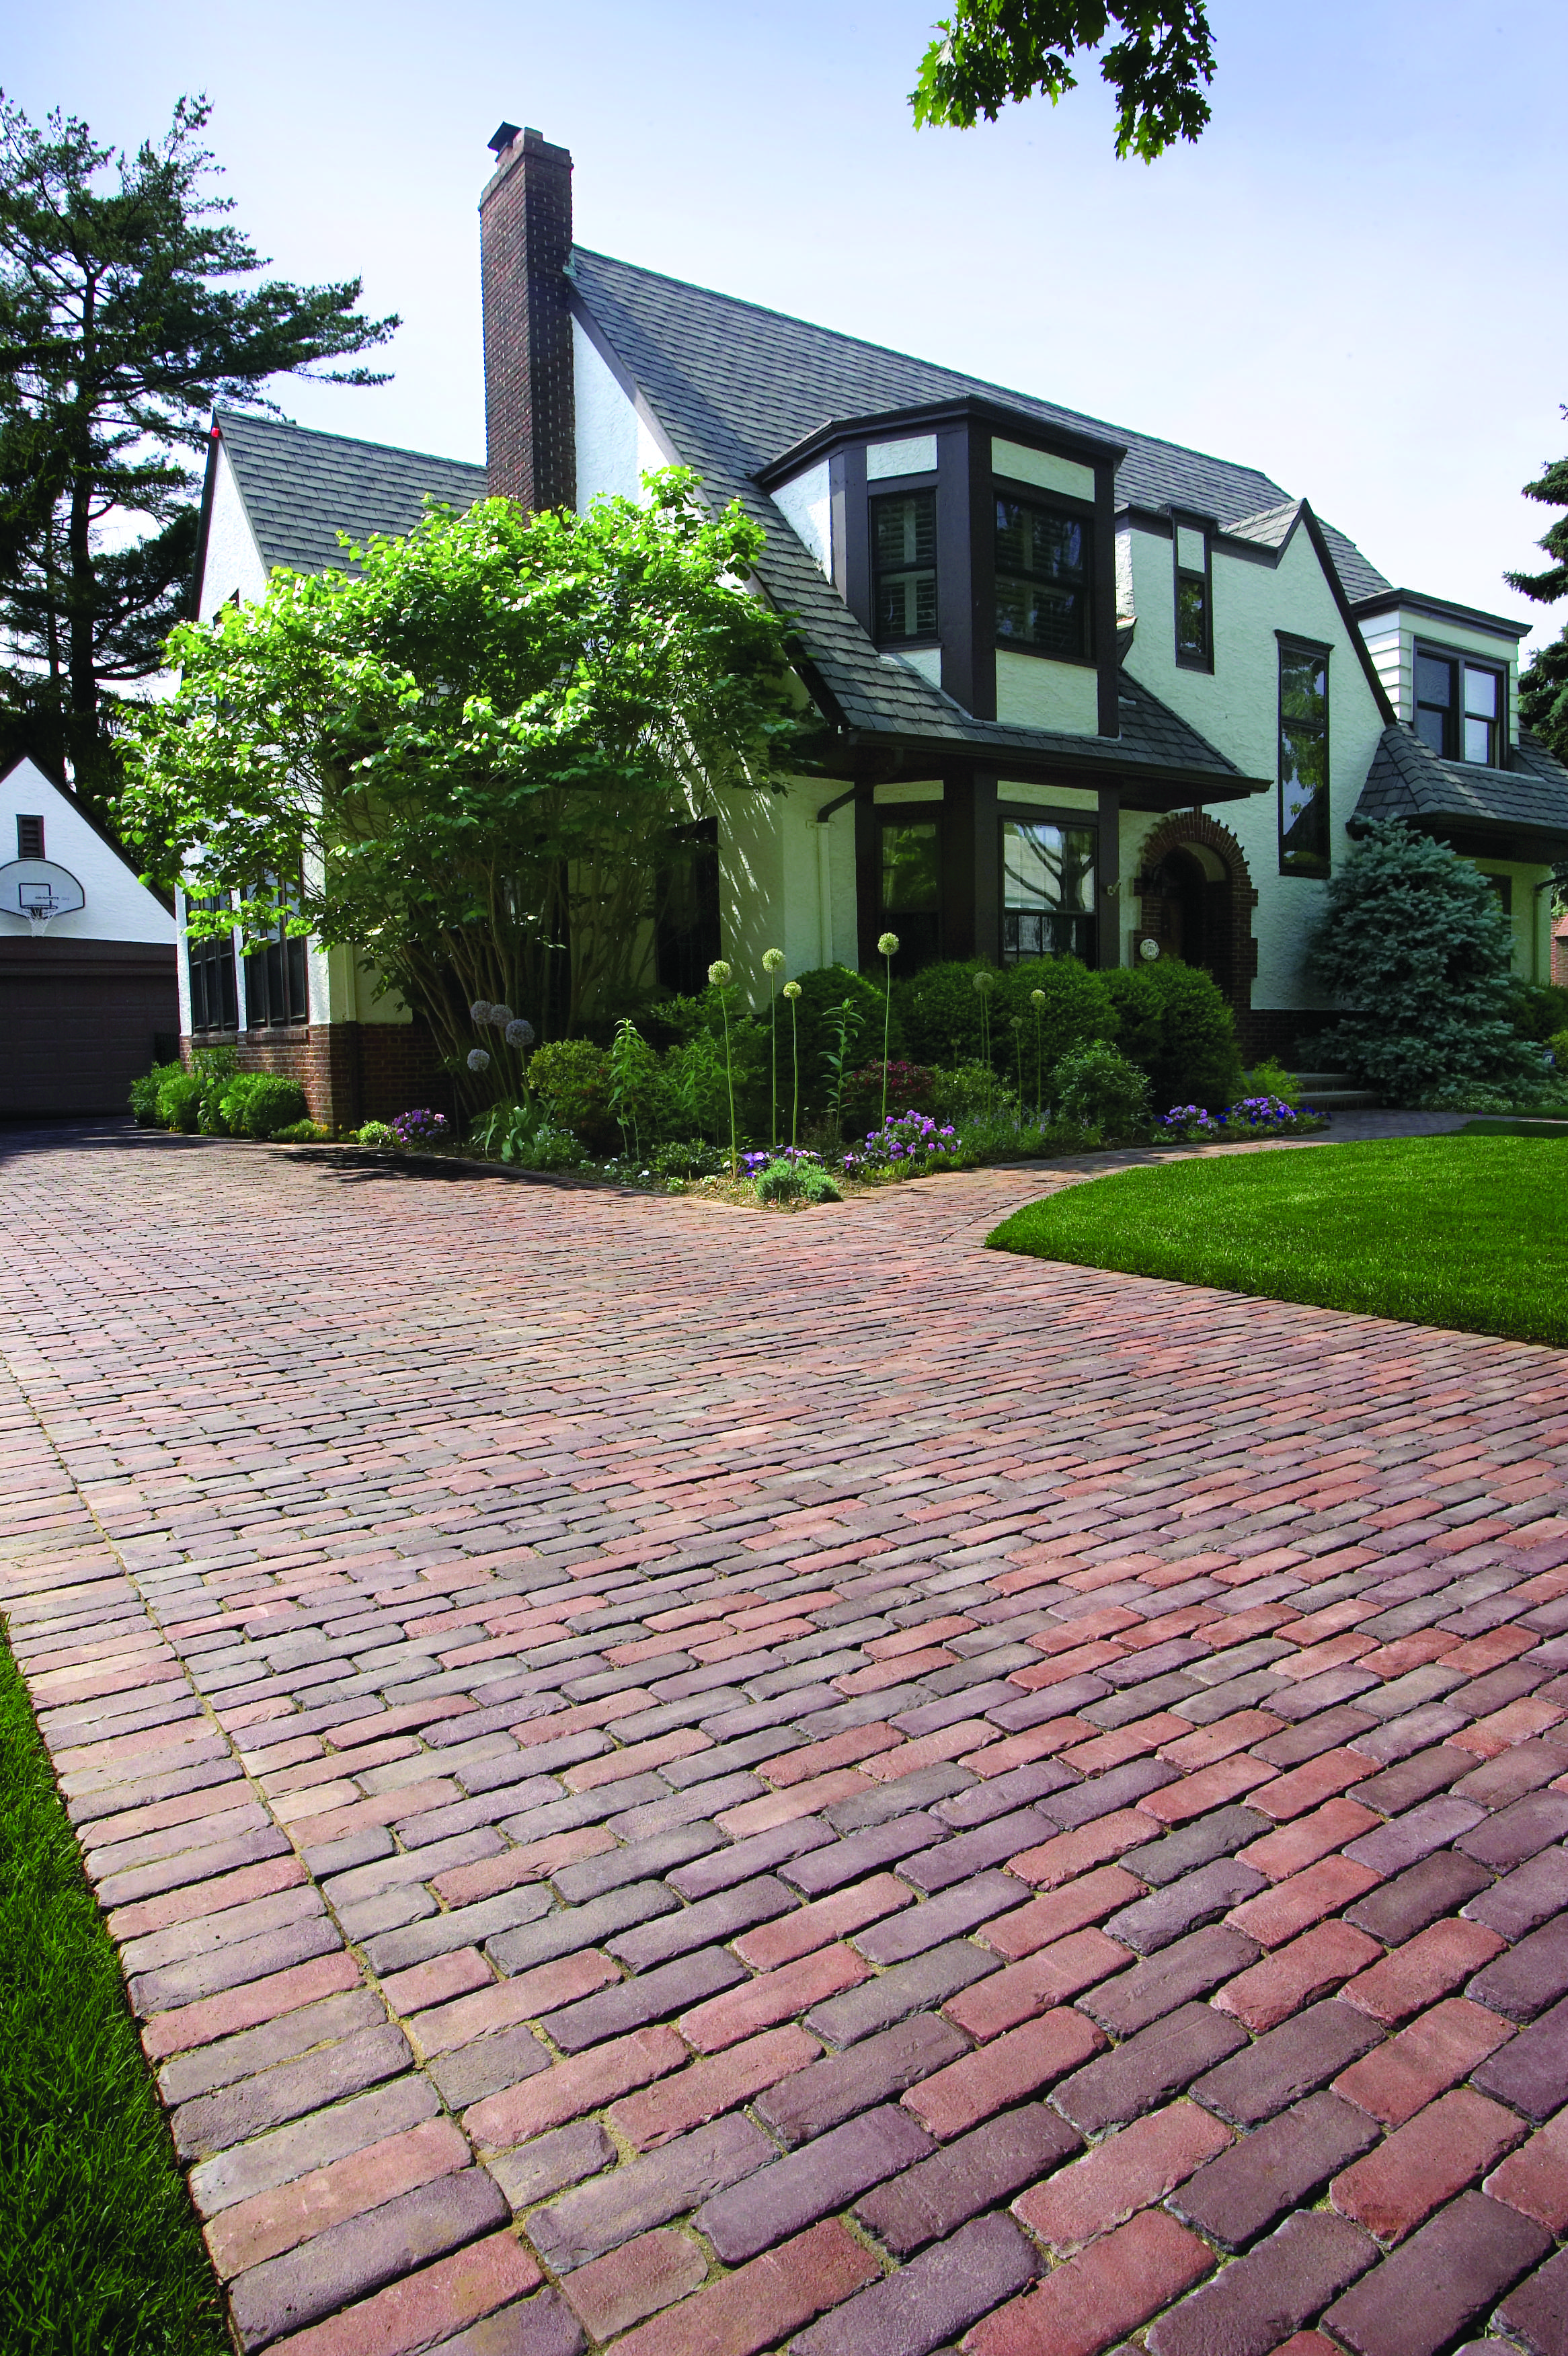 The Best Concrete Paving Stones for Modern Walkways in Hudson Valley, NY